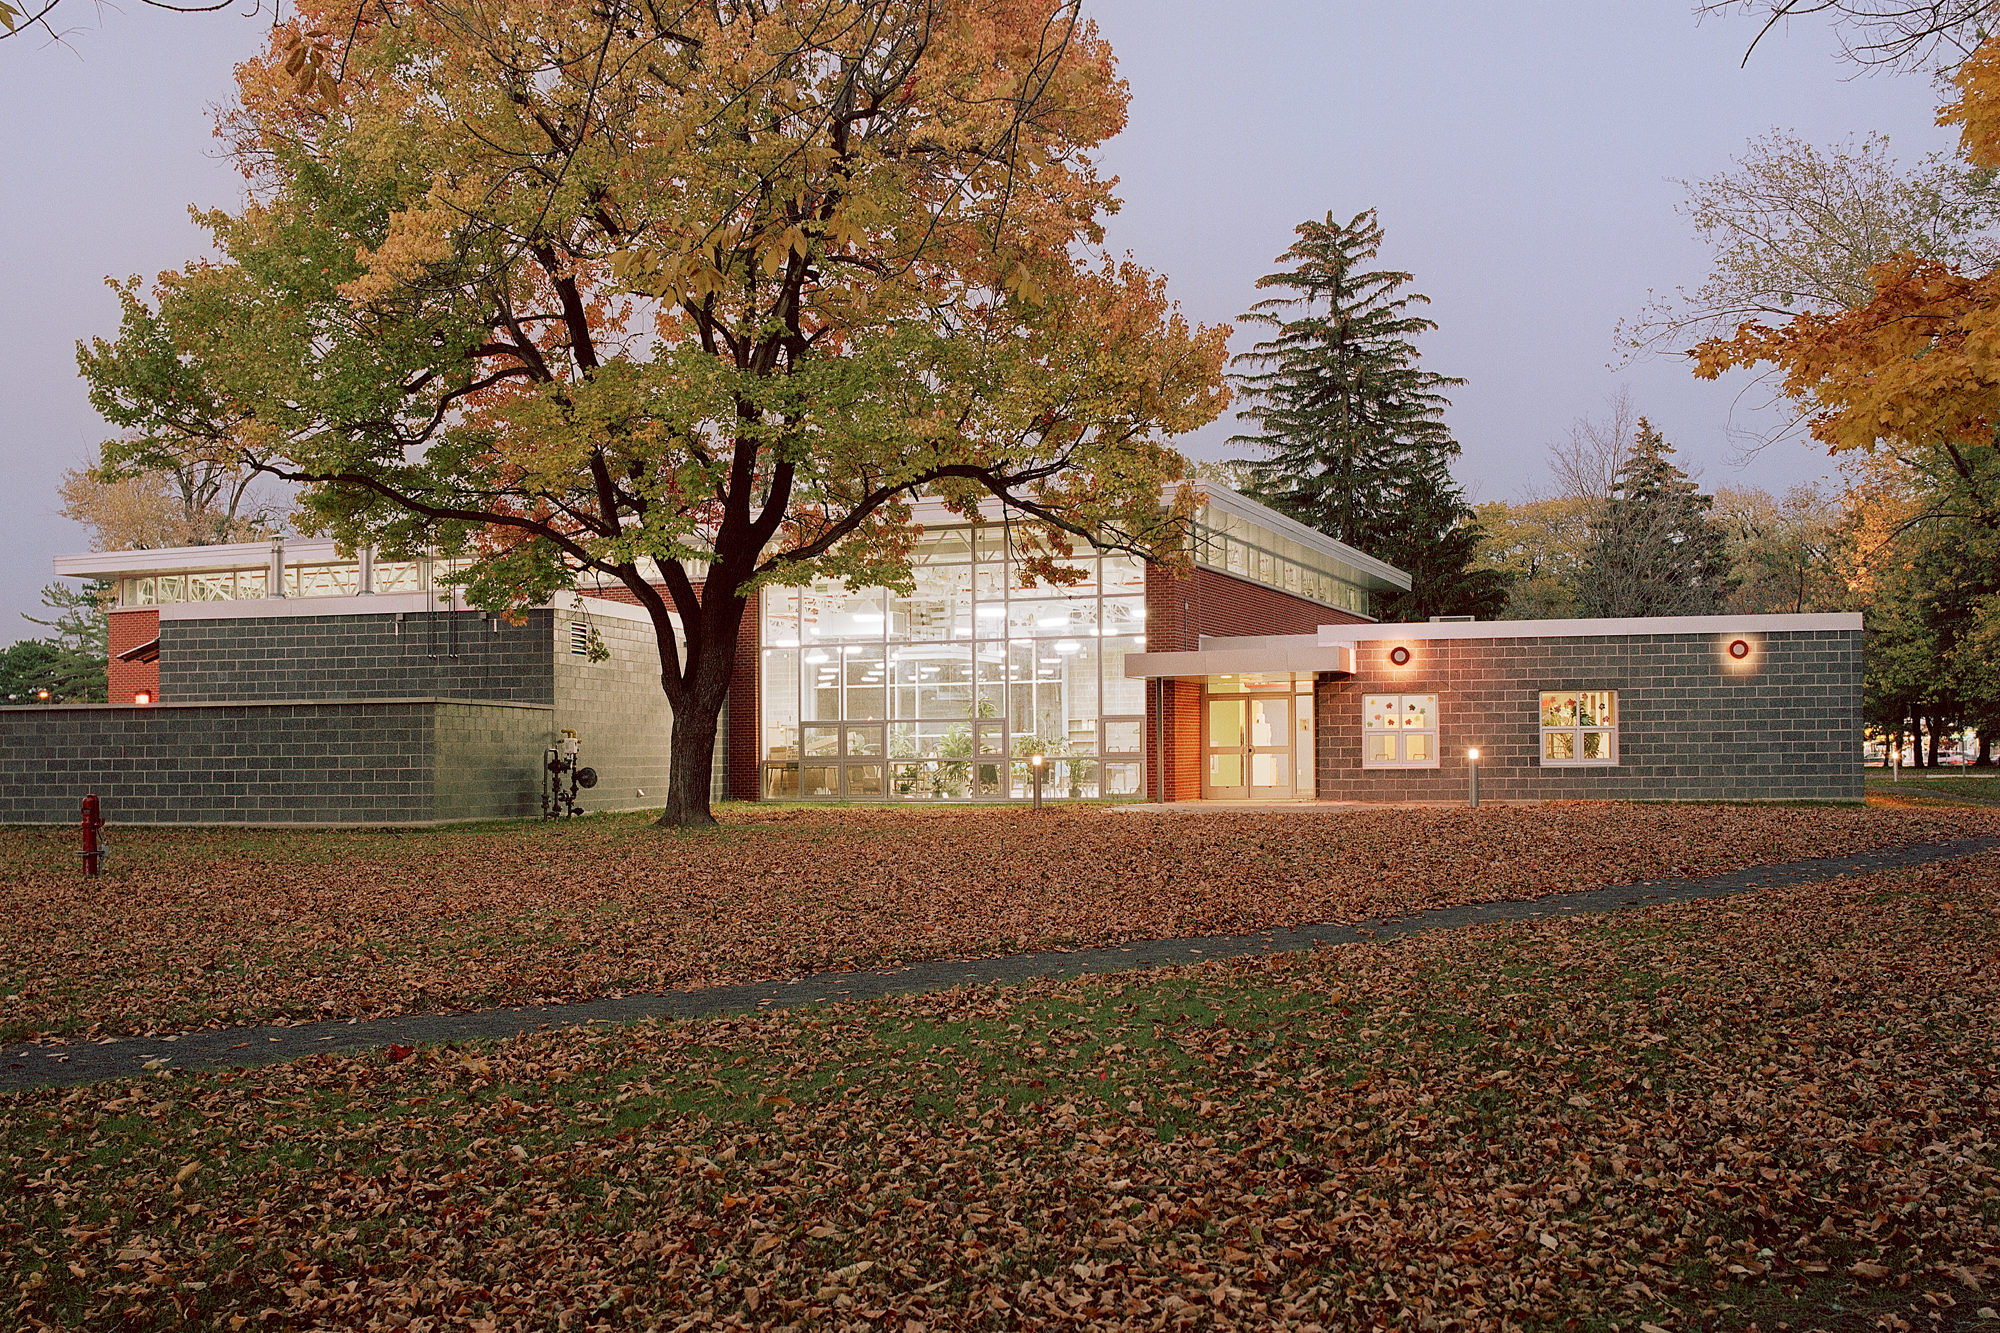 Sheltered Workshop - Behavioral Health Architecture